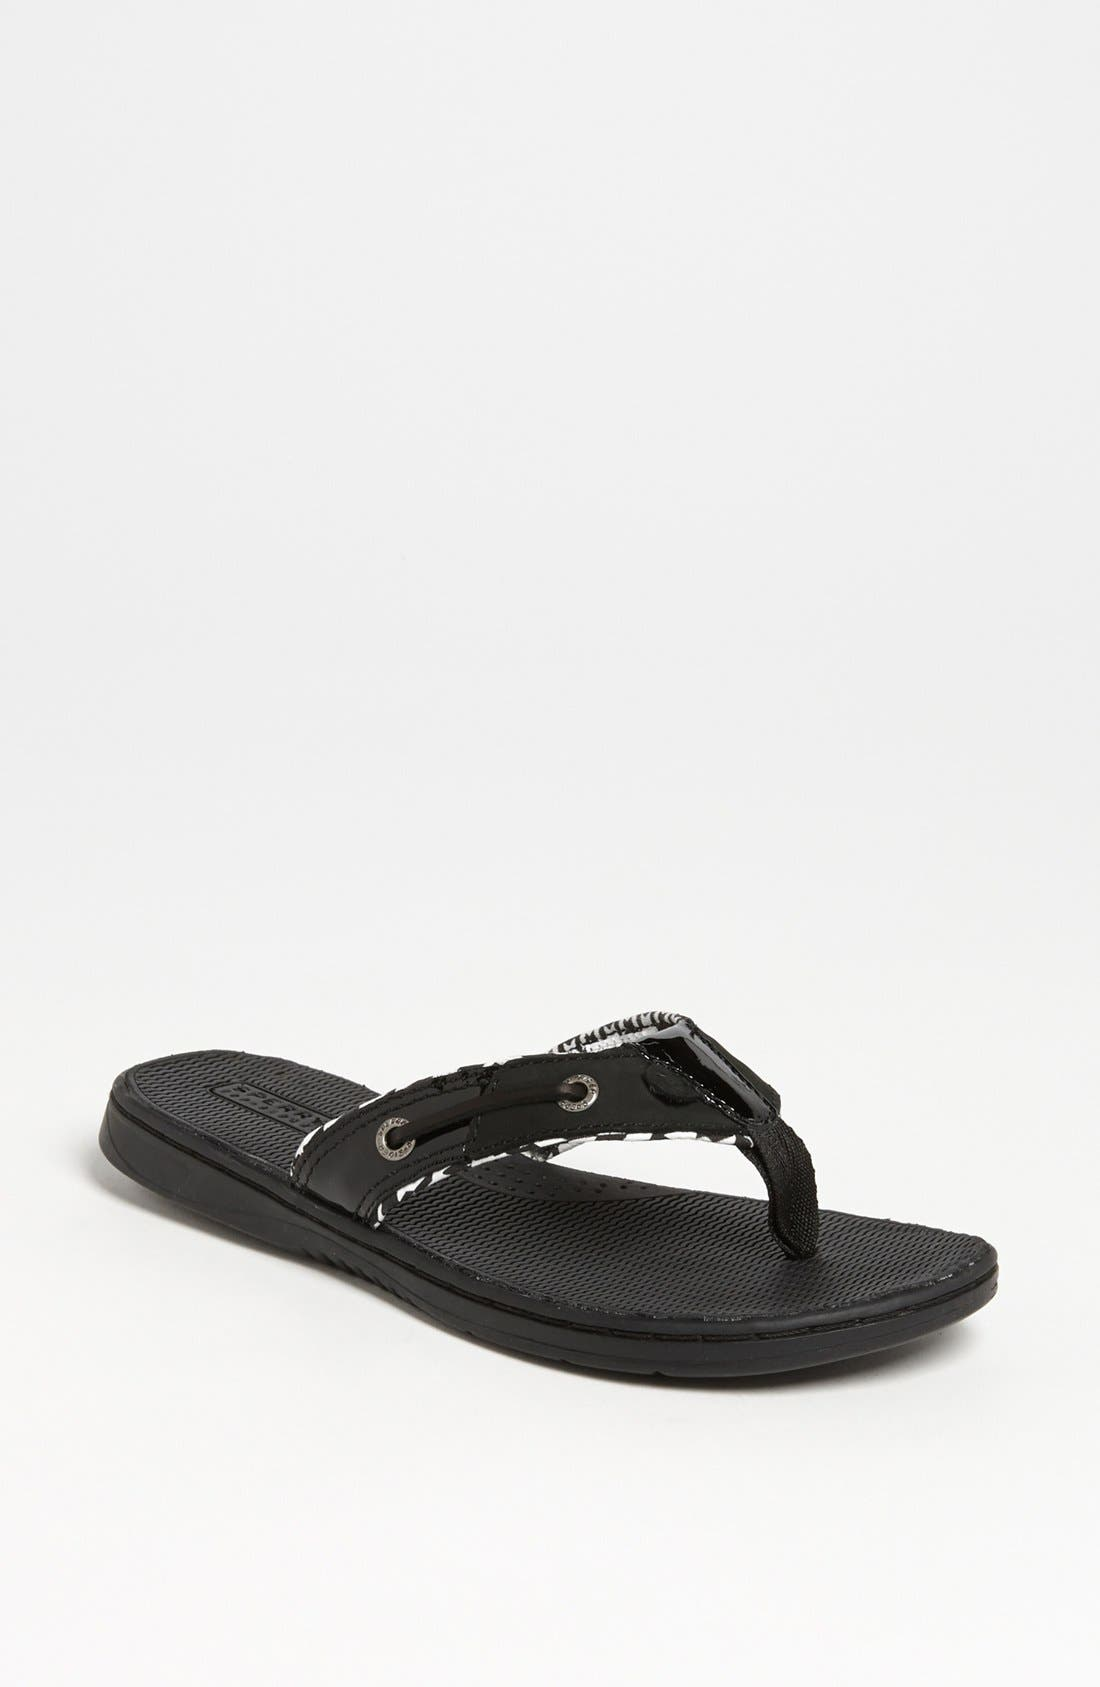 Main Image - Sperry 'Seafish' Flip Flop